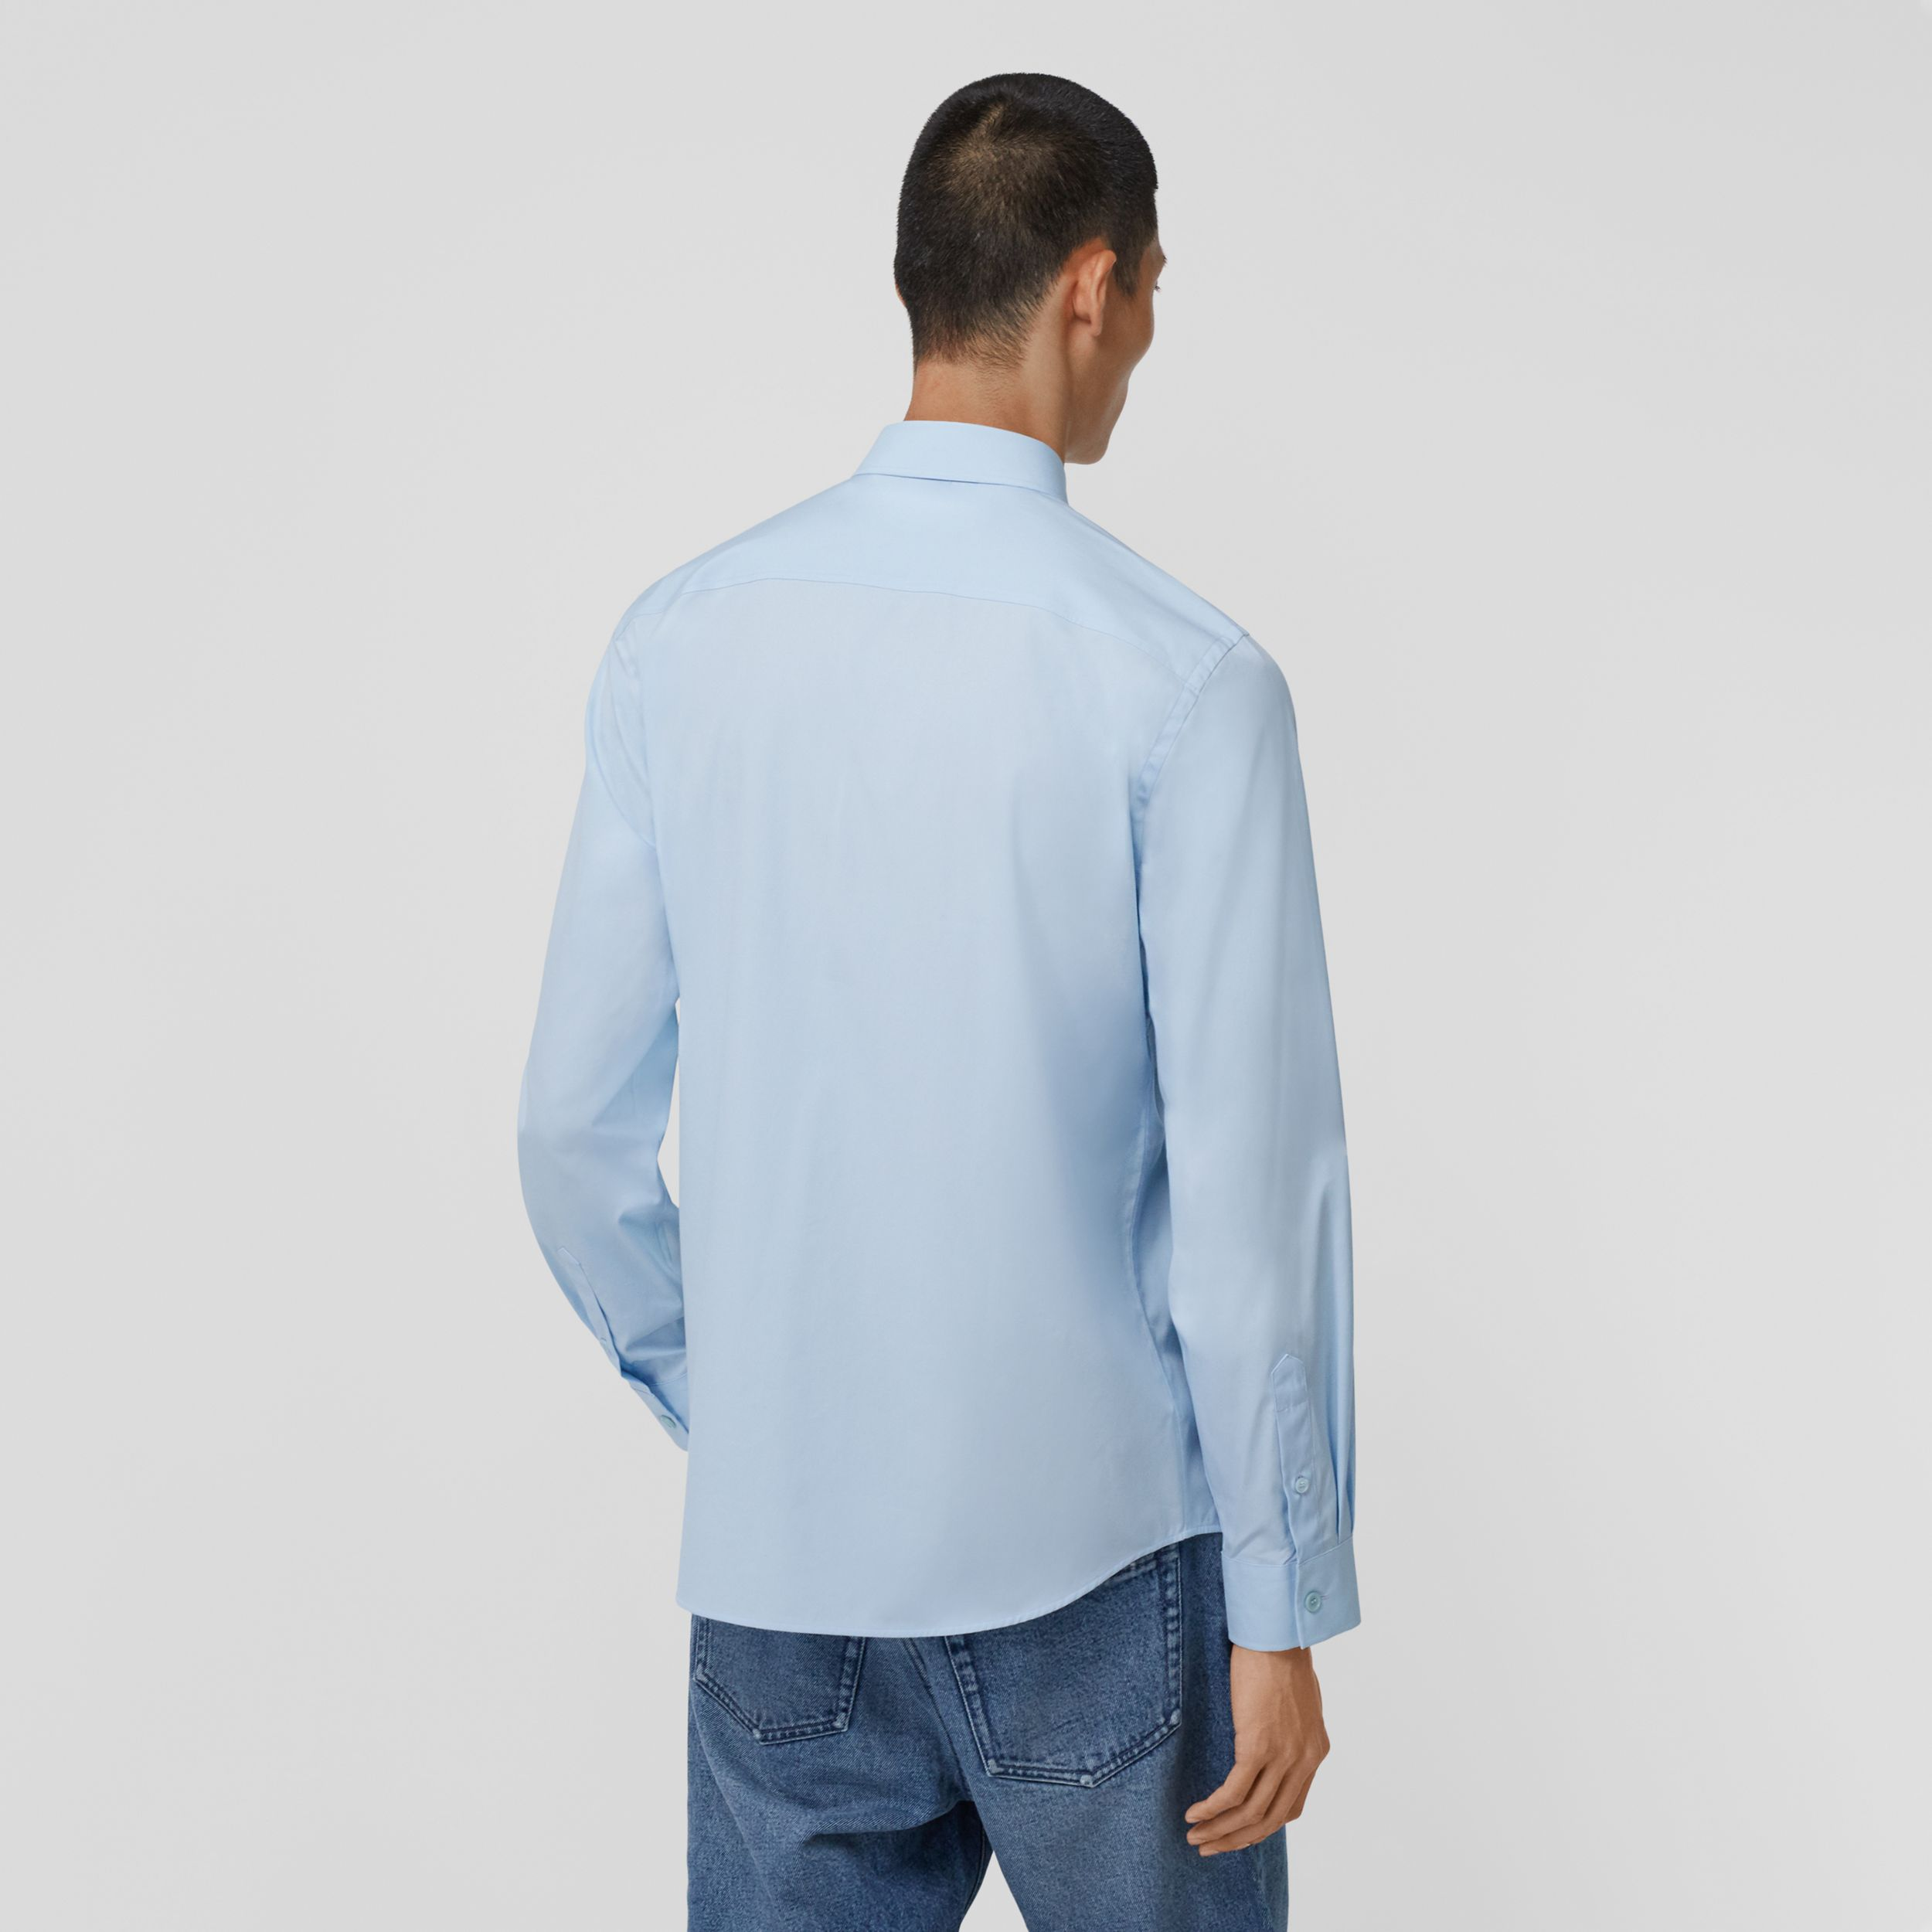 Logo Detail Stretch Cotton Poplin Shirt in Pale Blue - Men | Burberry - 3